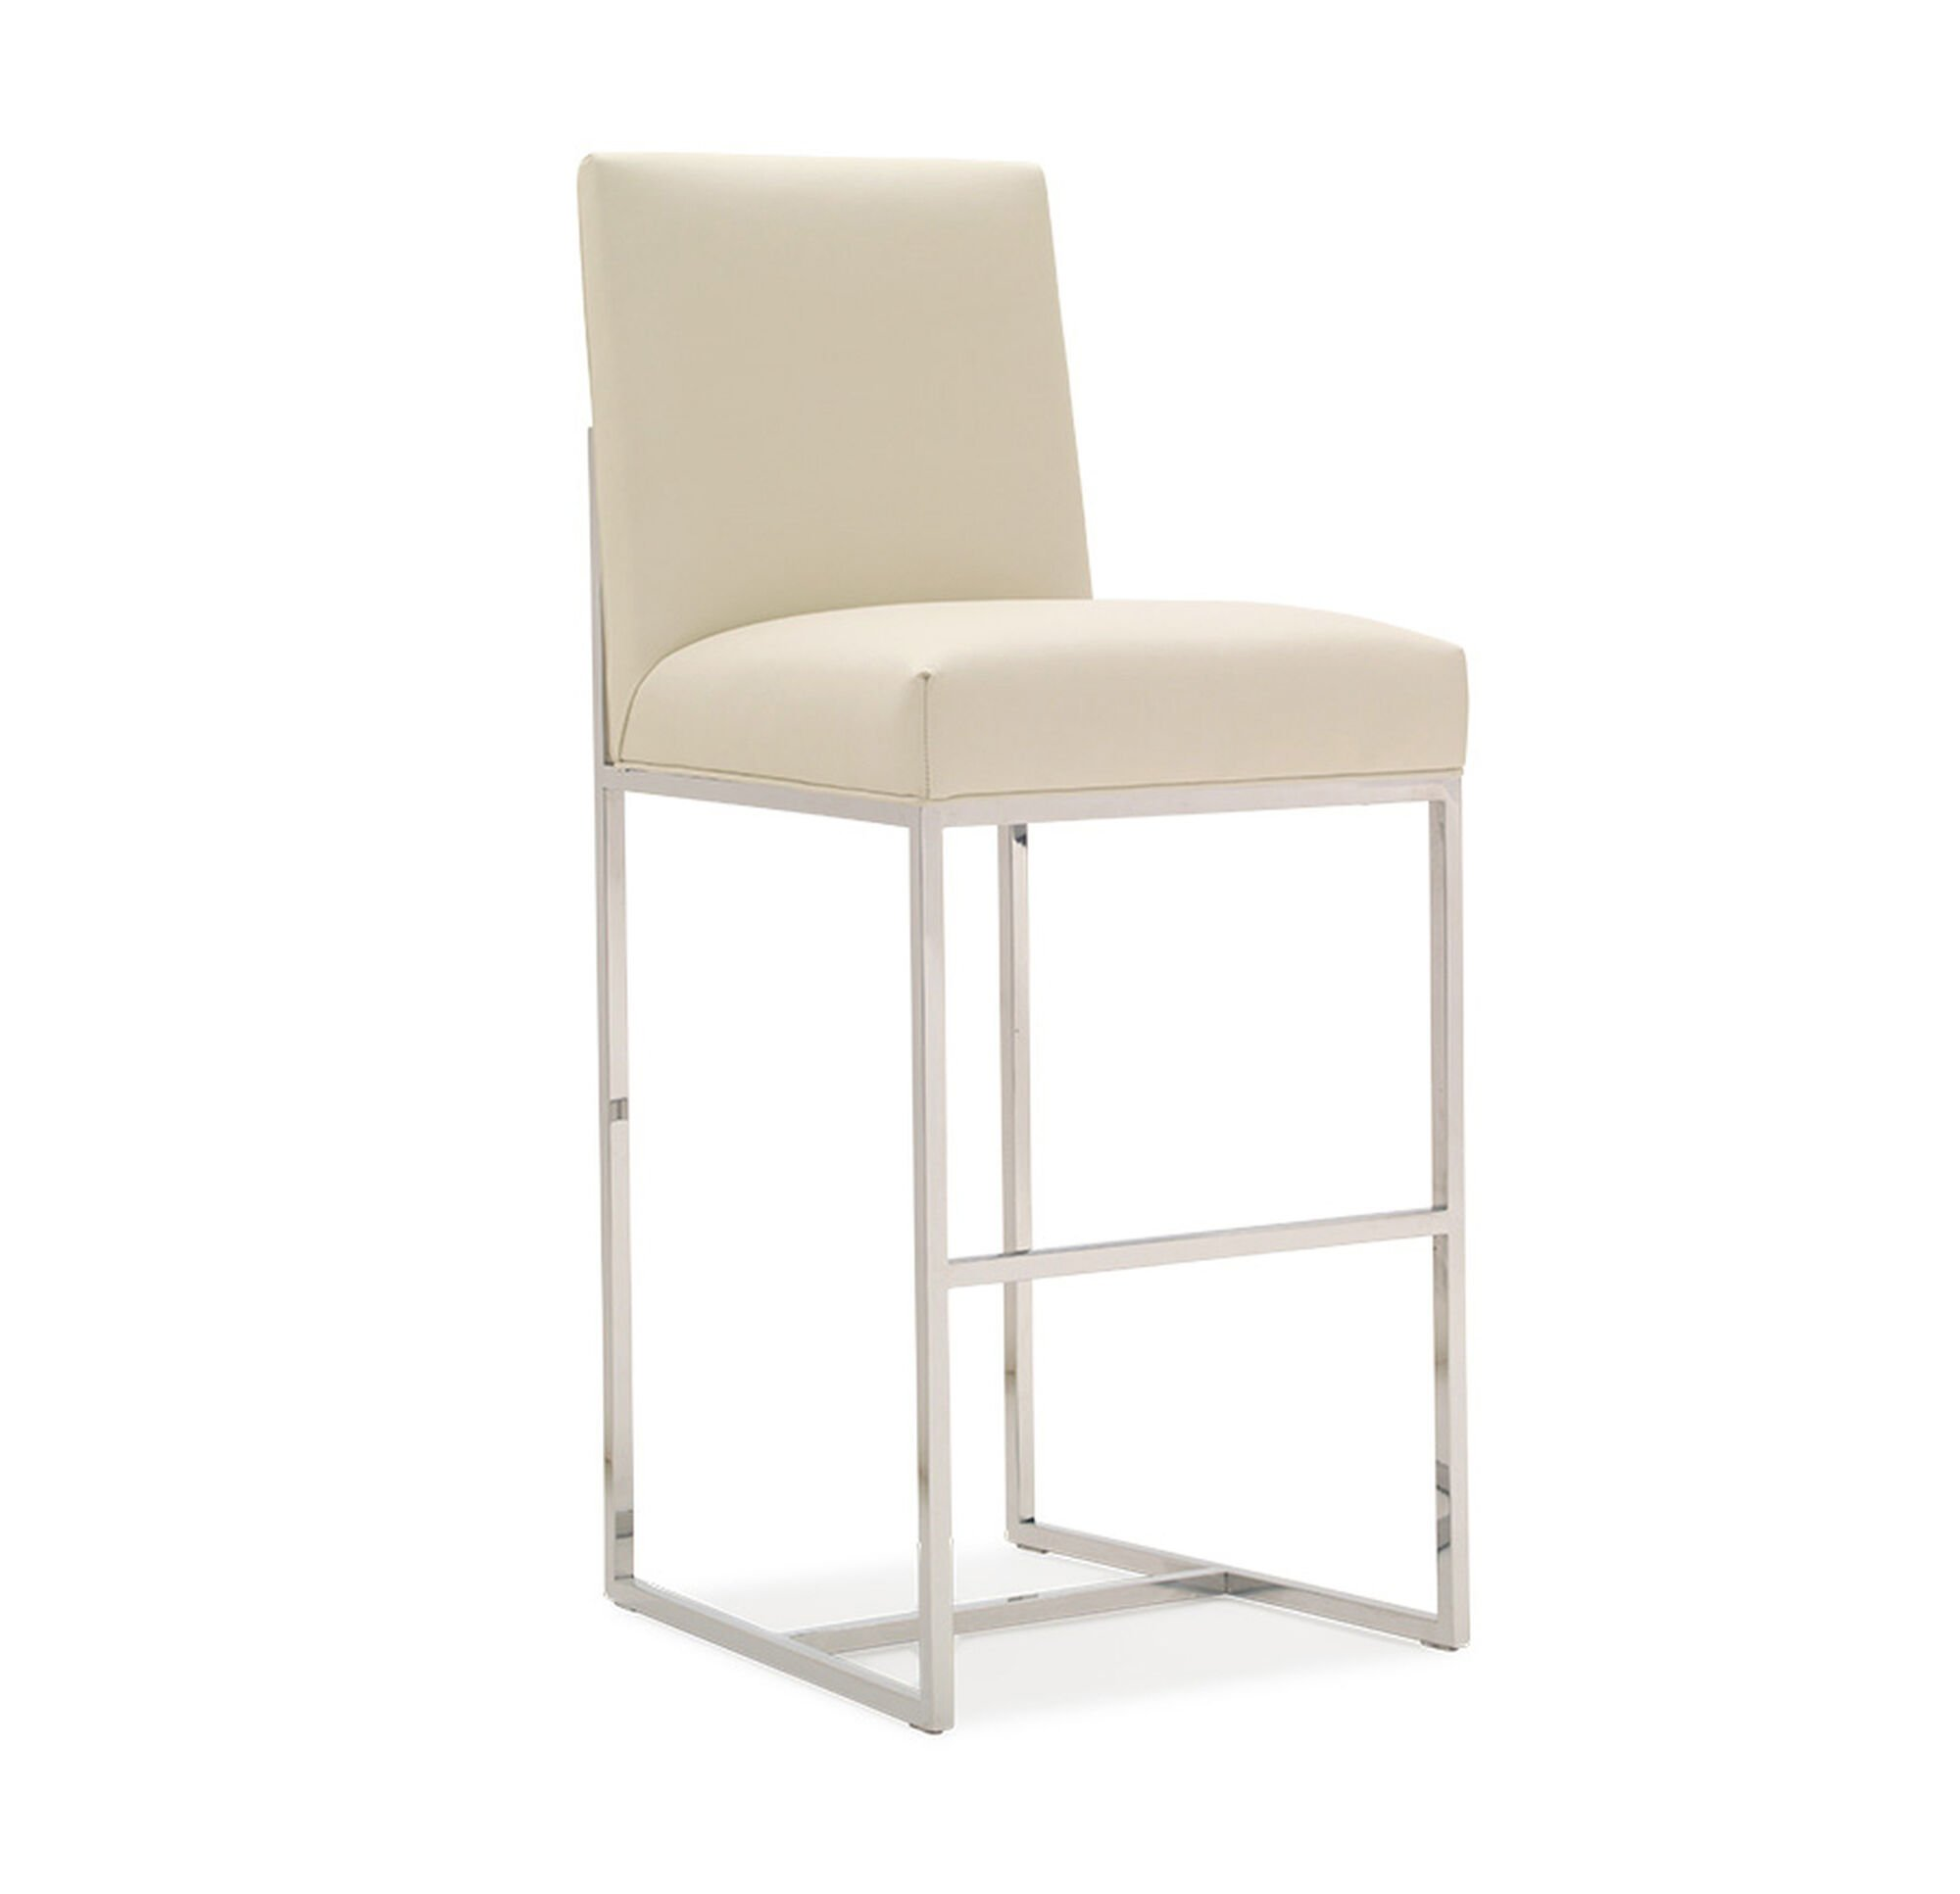 Gage leather counter stool